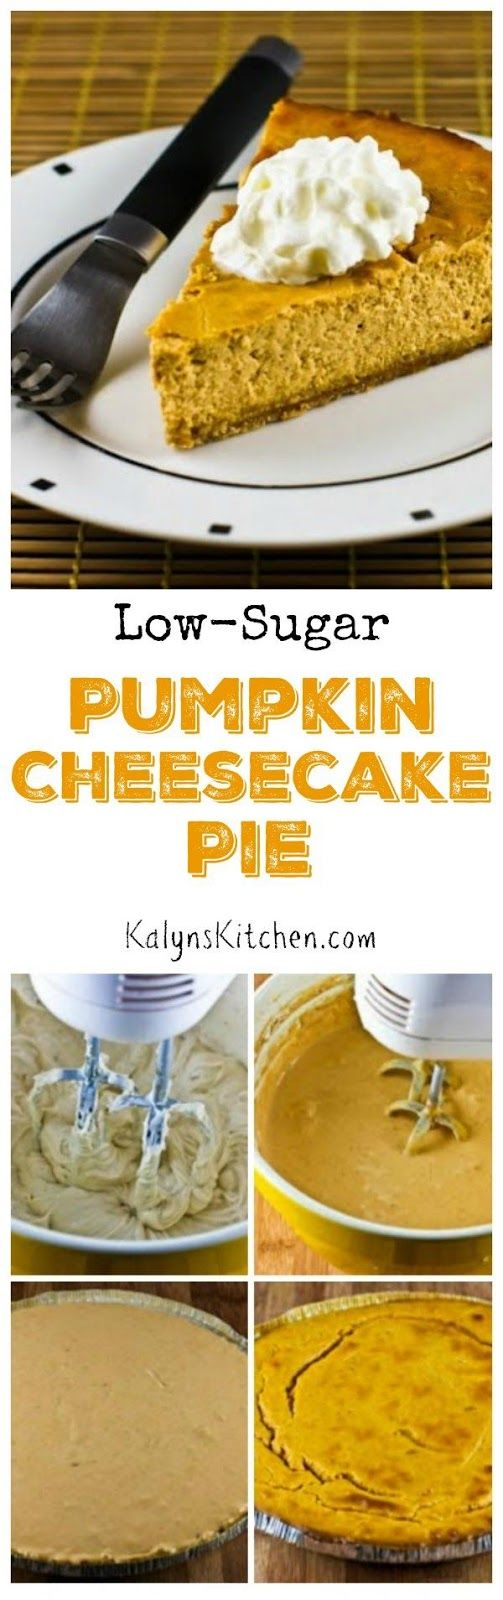 and had a baby, it would be this Low-Sugar Pumpkin Cheesecake Pie ...